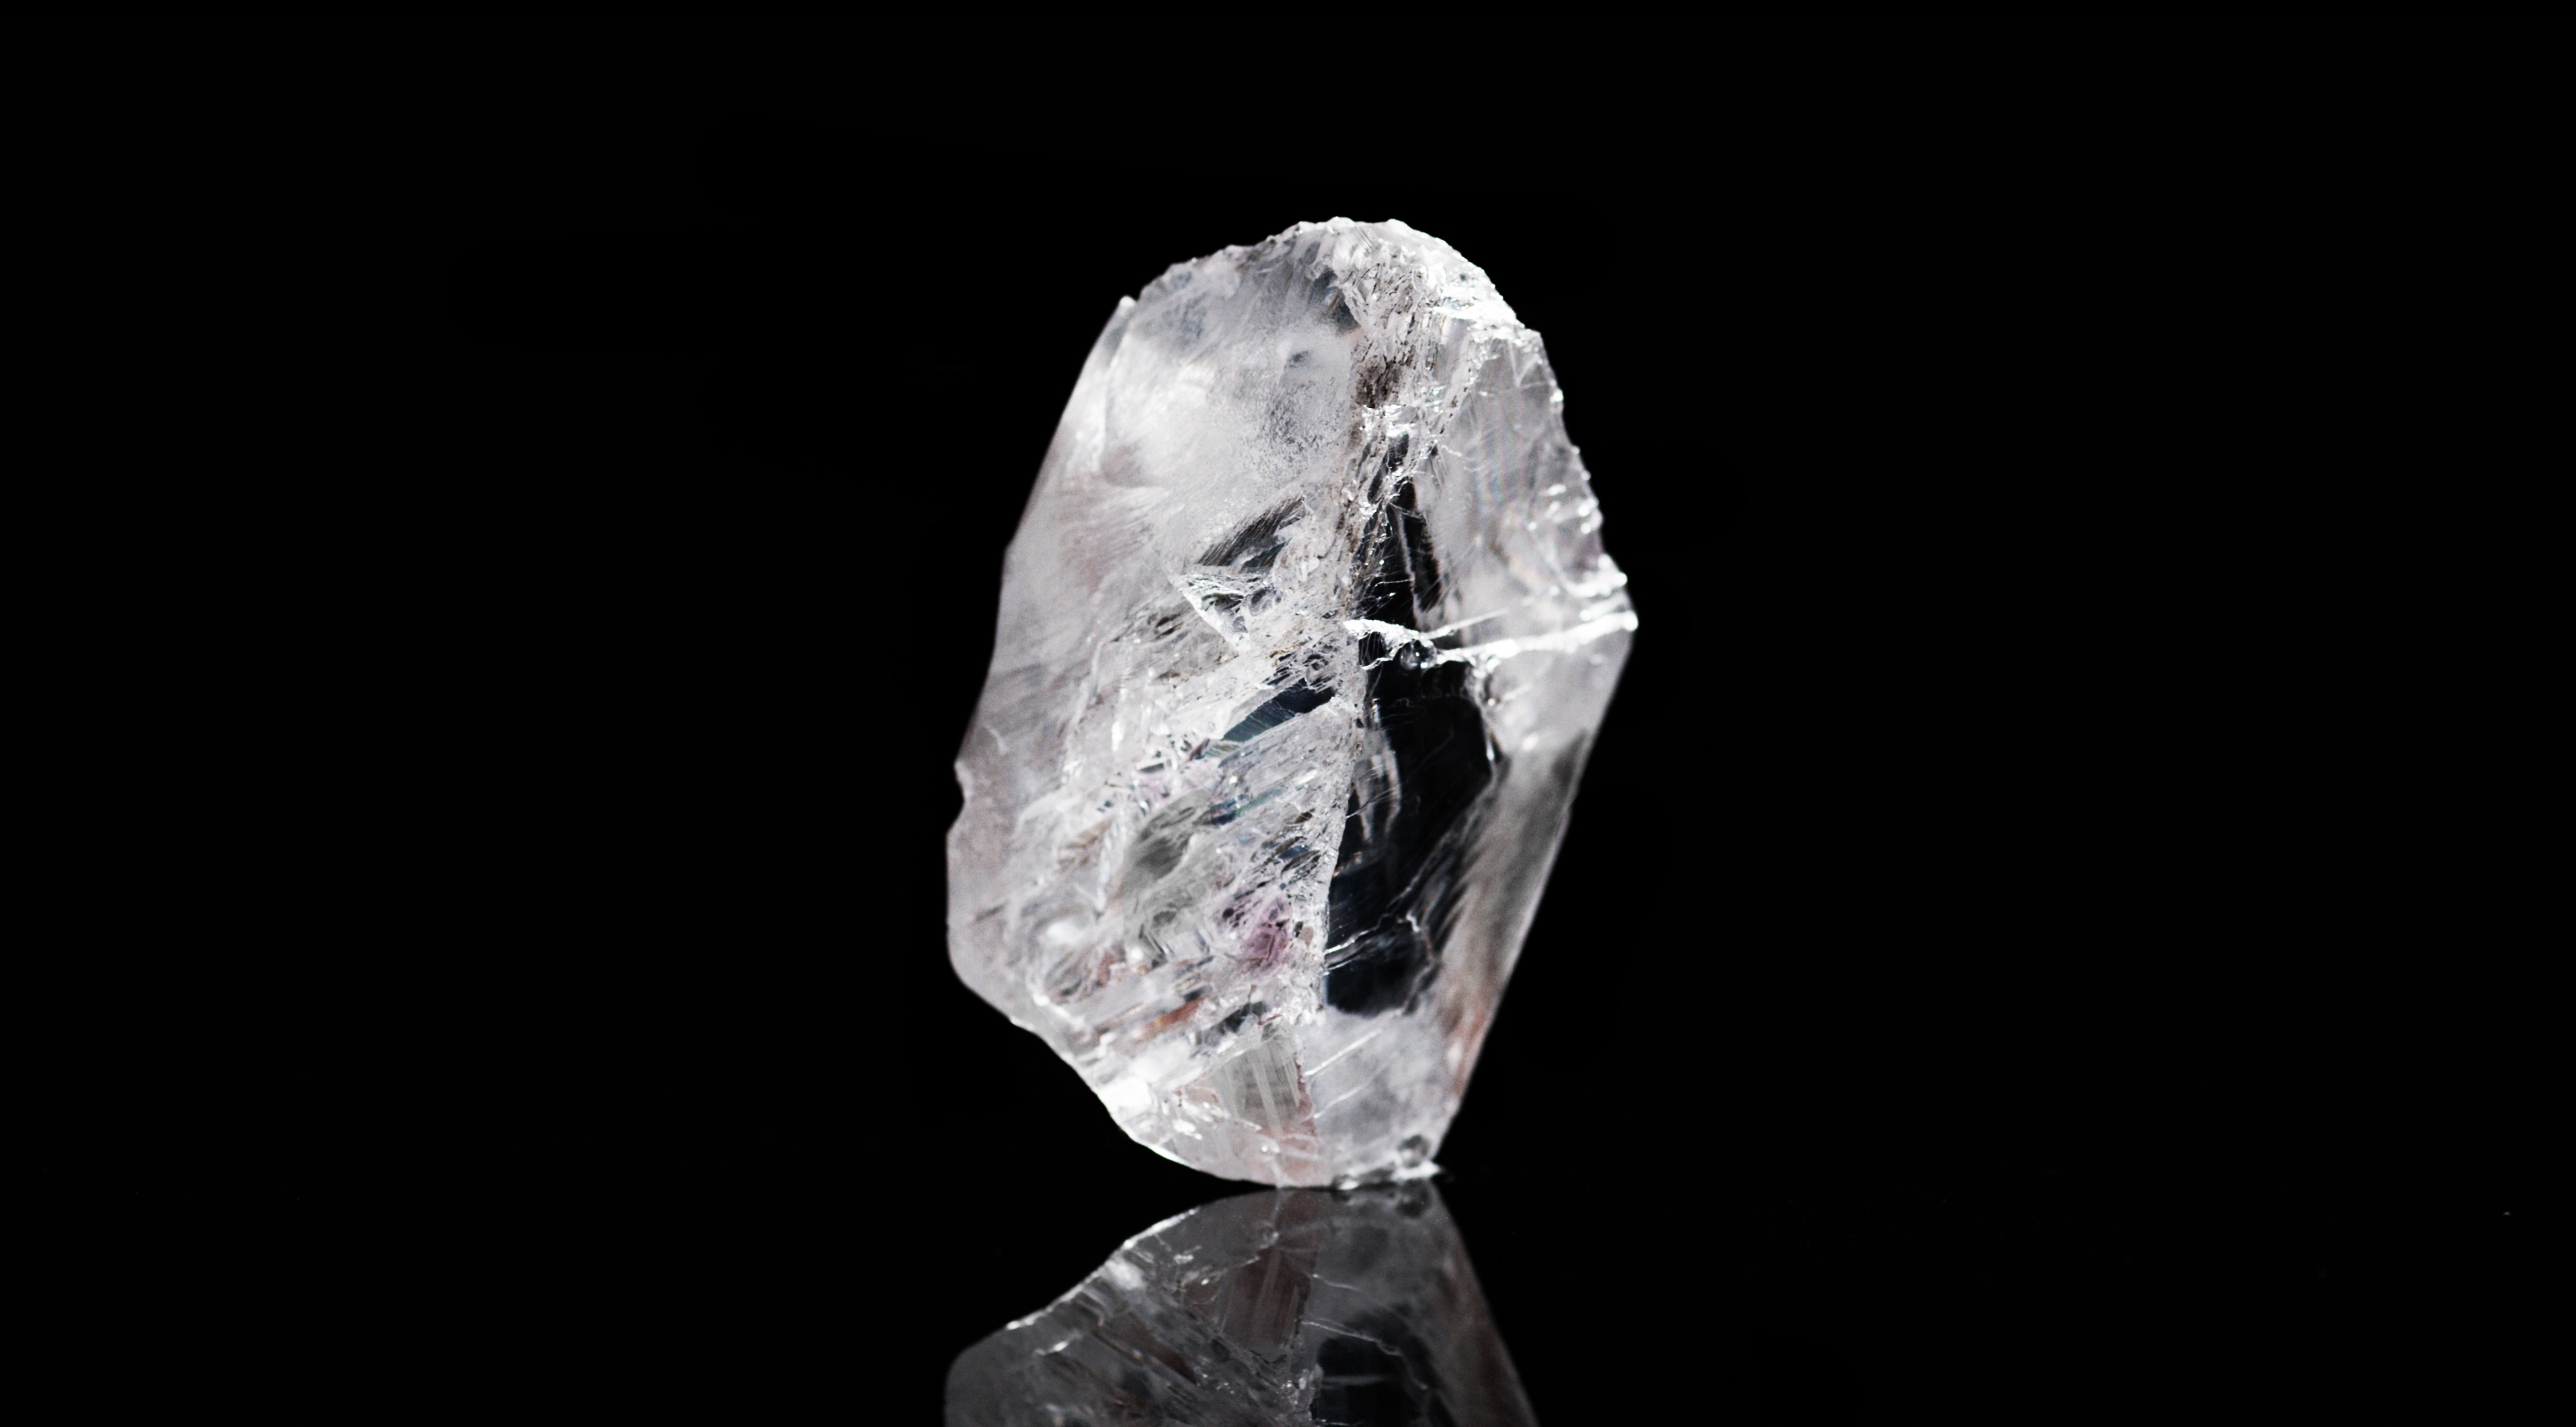 sold london pink at oppenheimer evening goes auction valuable news star most standard be in diamond to ever on show